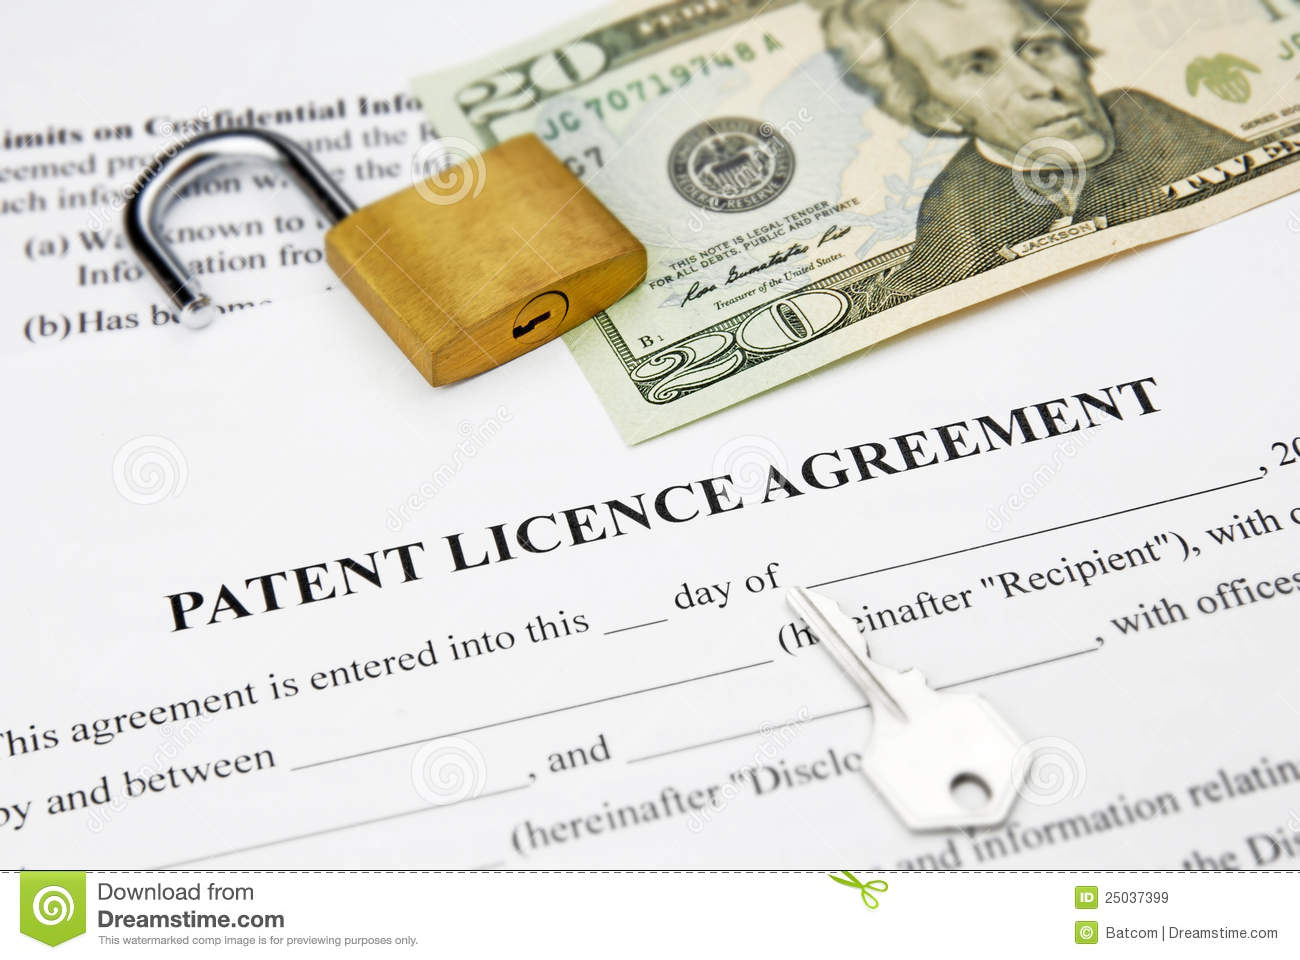 Patent licence agreement stock image image of license for Royalty free license agreement template